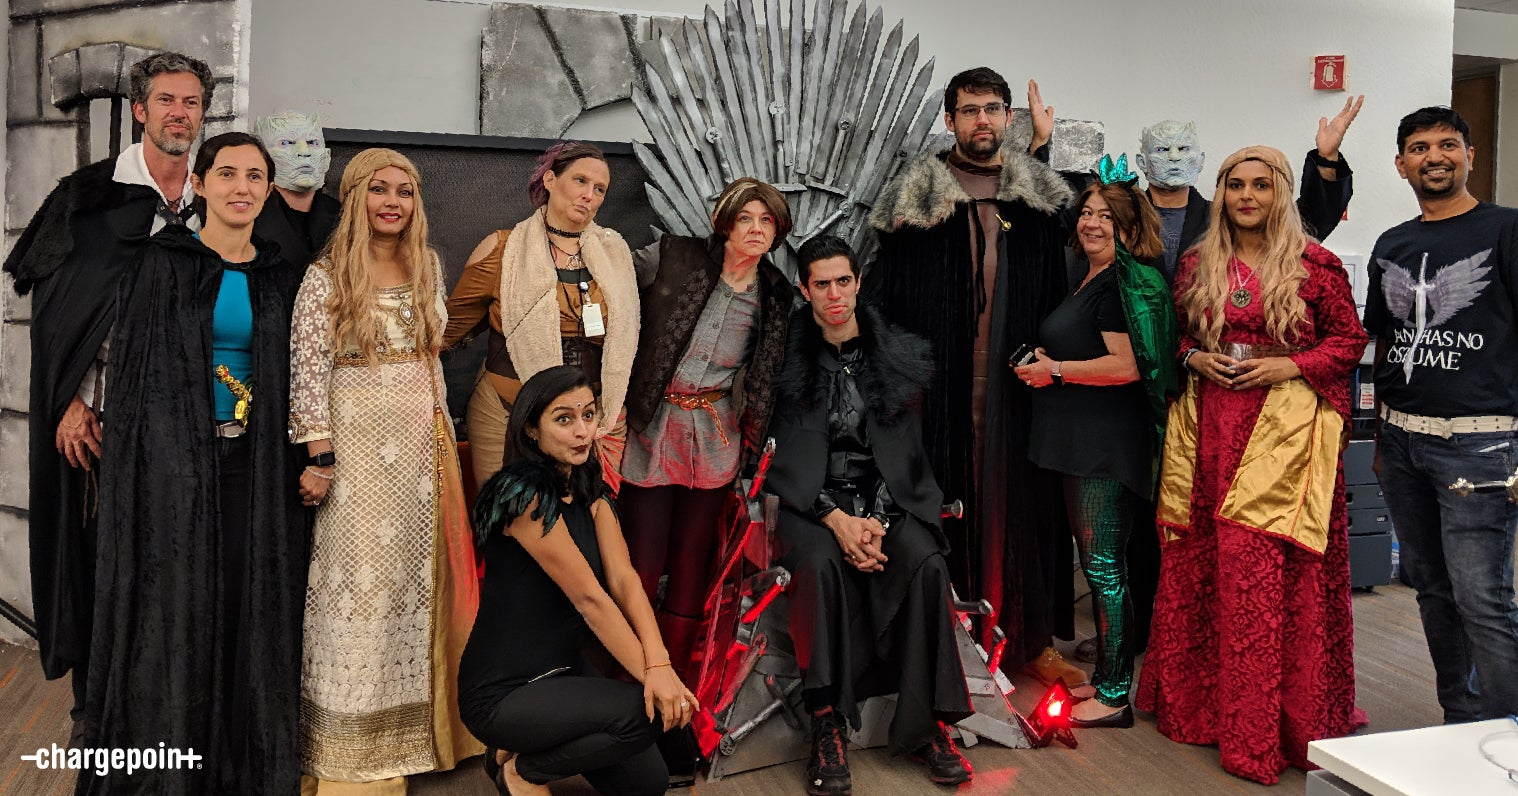 Engineering's Game of Thrones theme for the win!